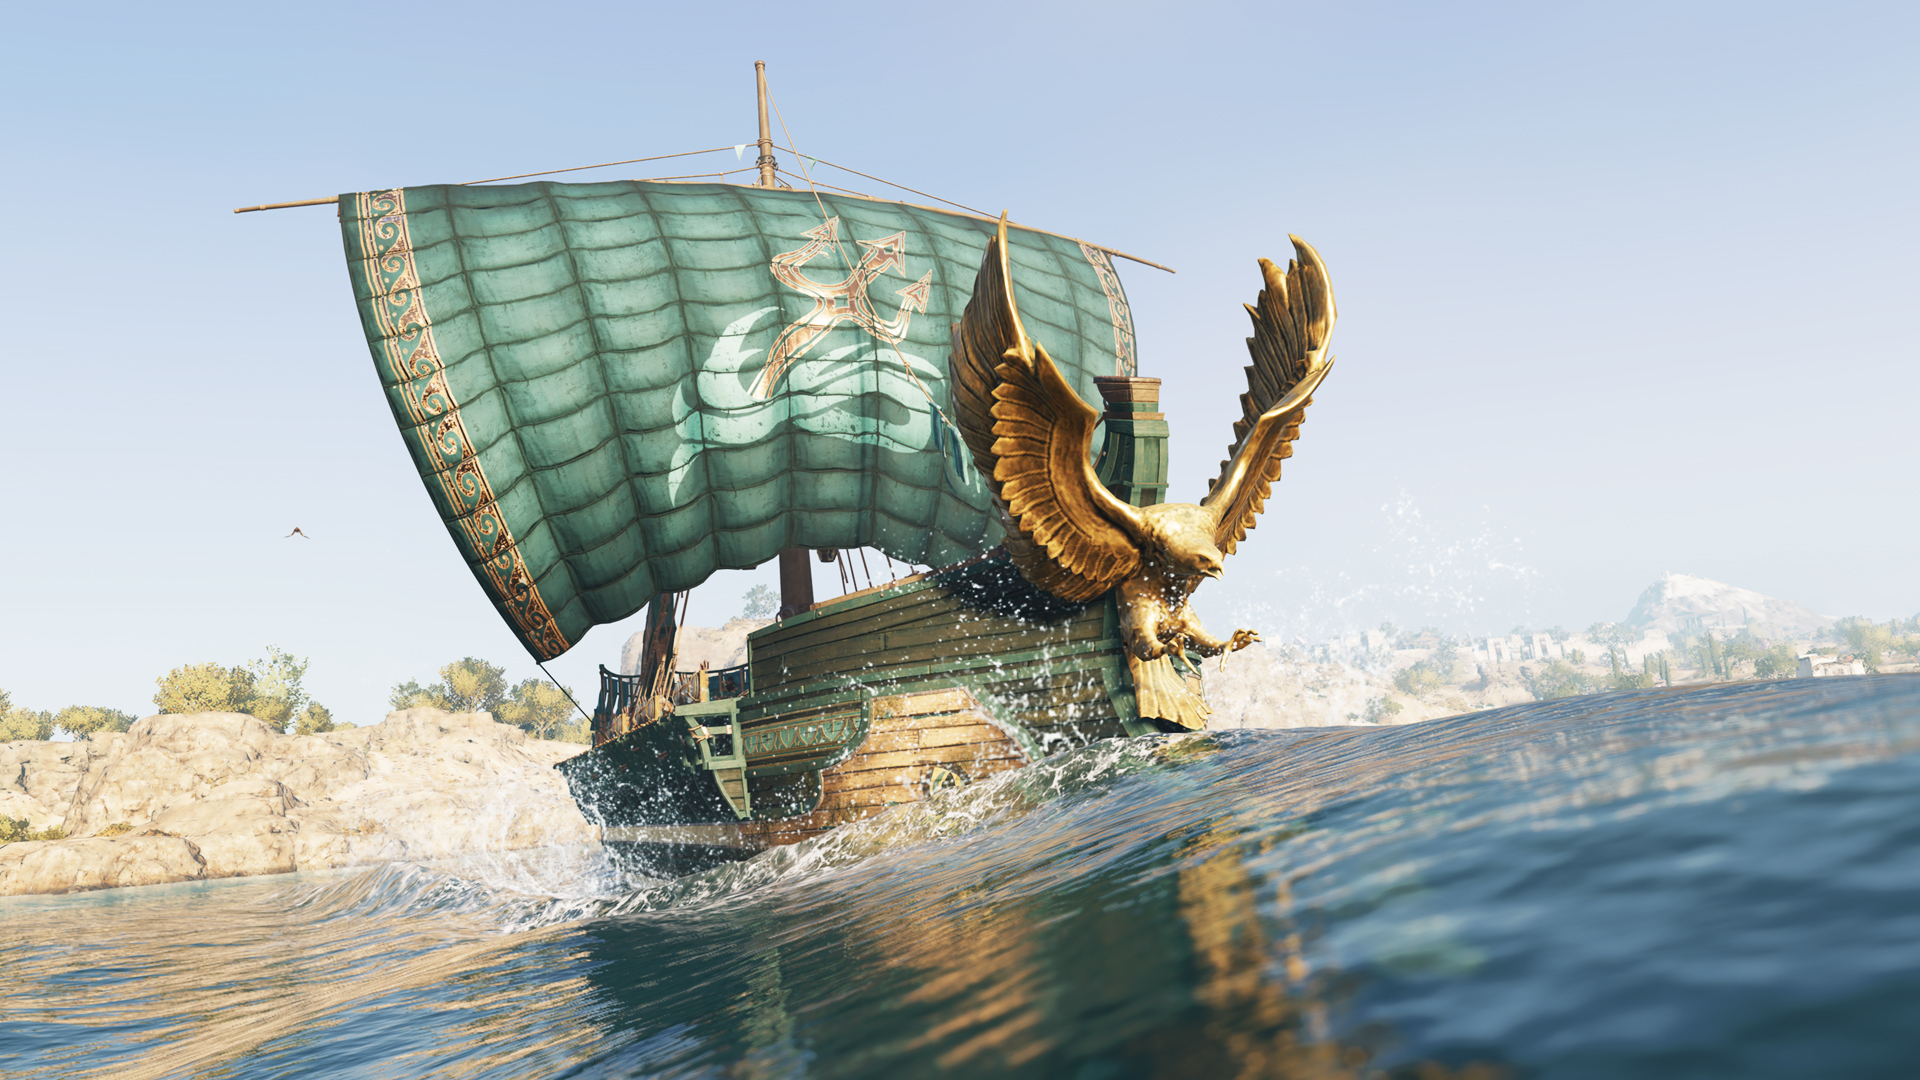 Boat with sail up and gold eagle mounted on the prow